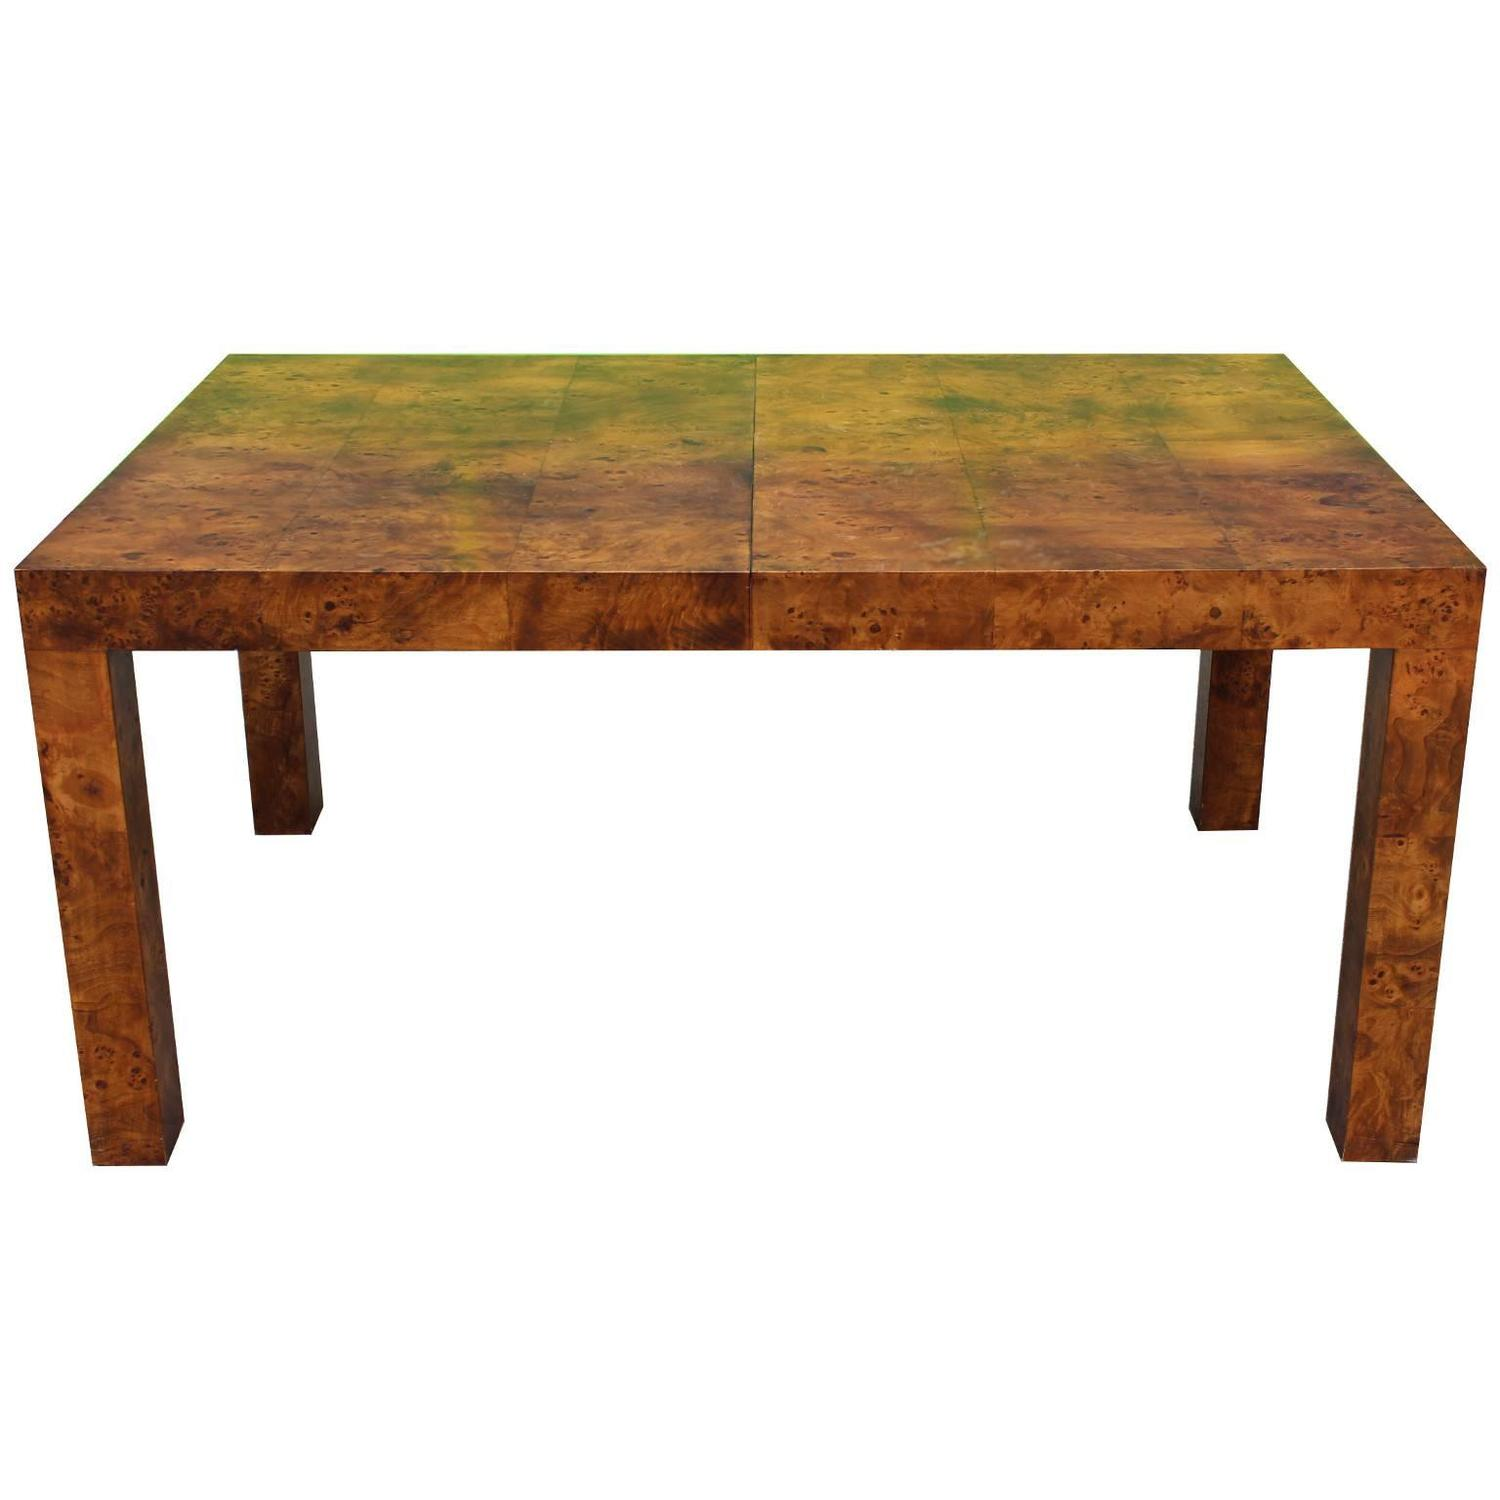 Milo Baughman Parsons Dining Table in Deep Burl for Lane at 1stdibs